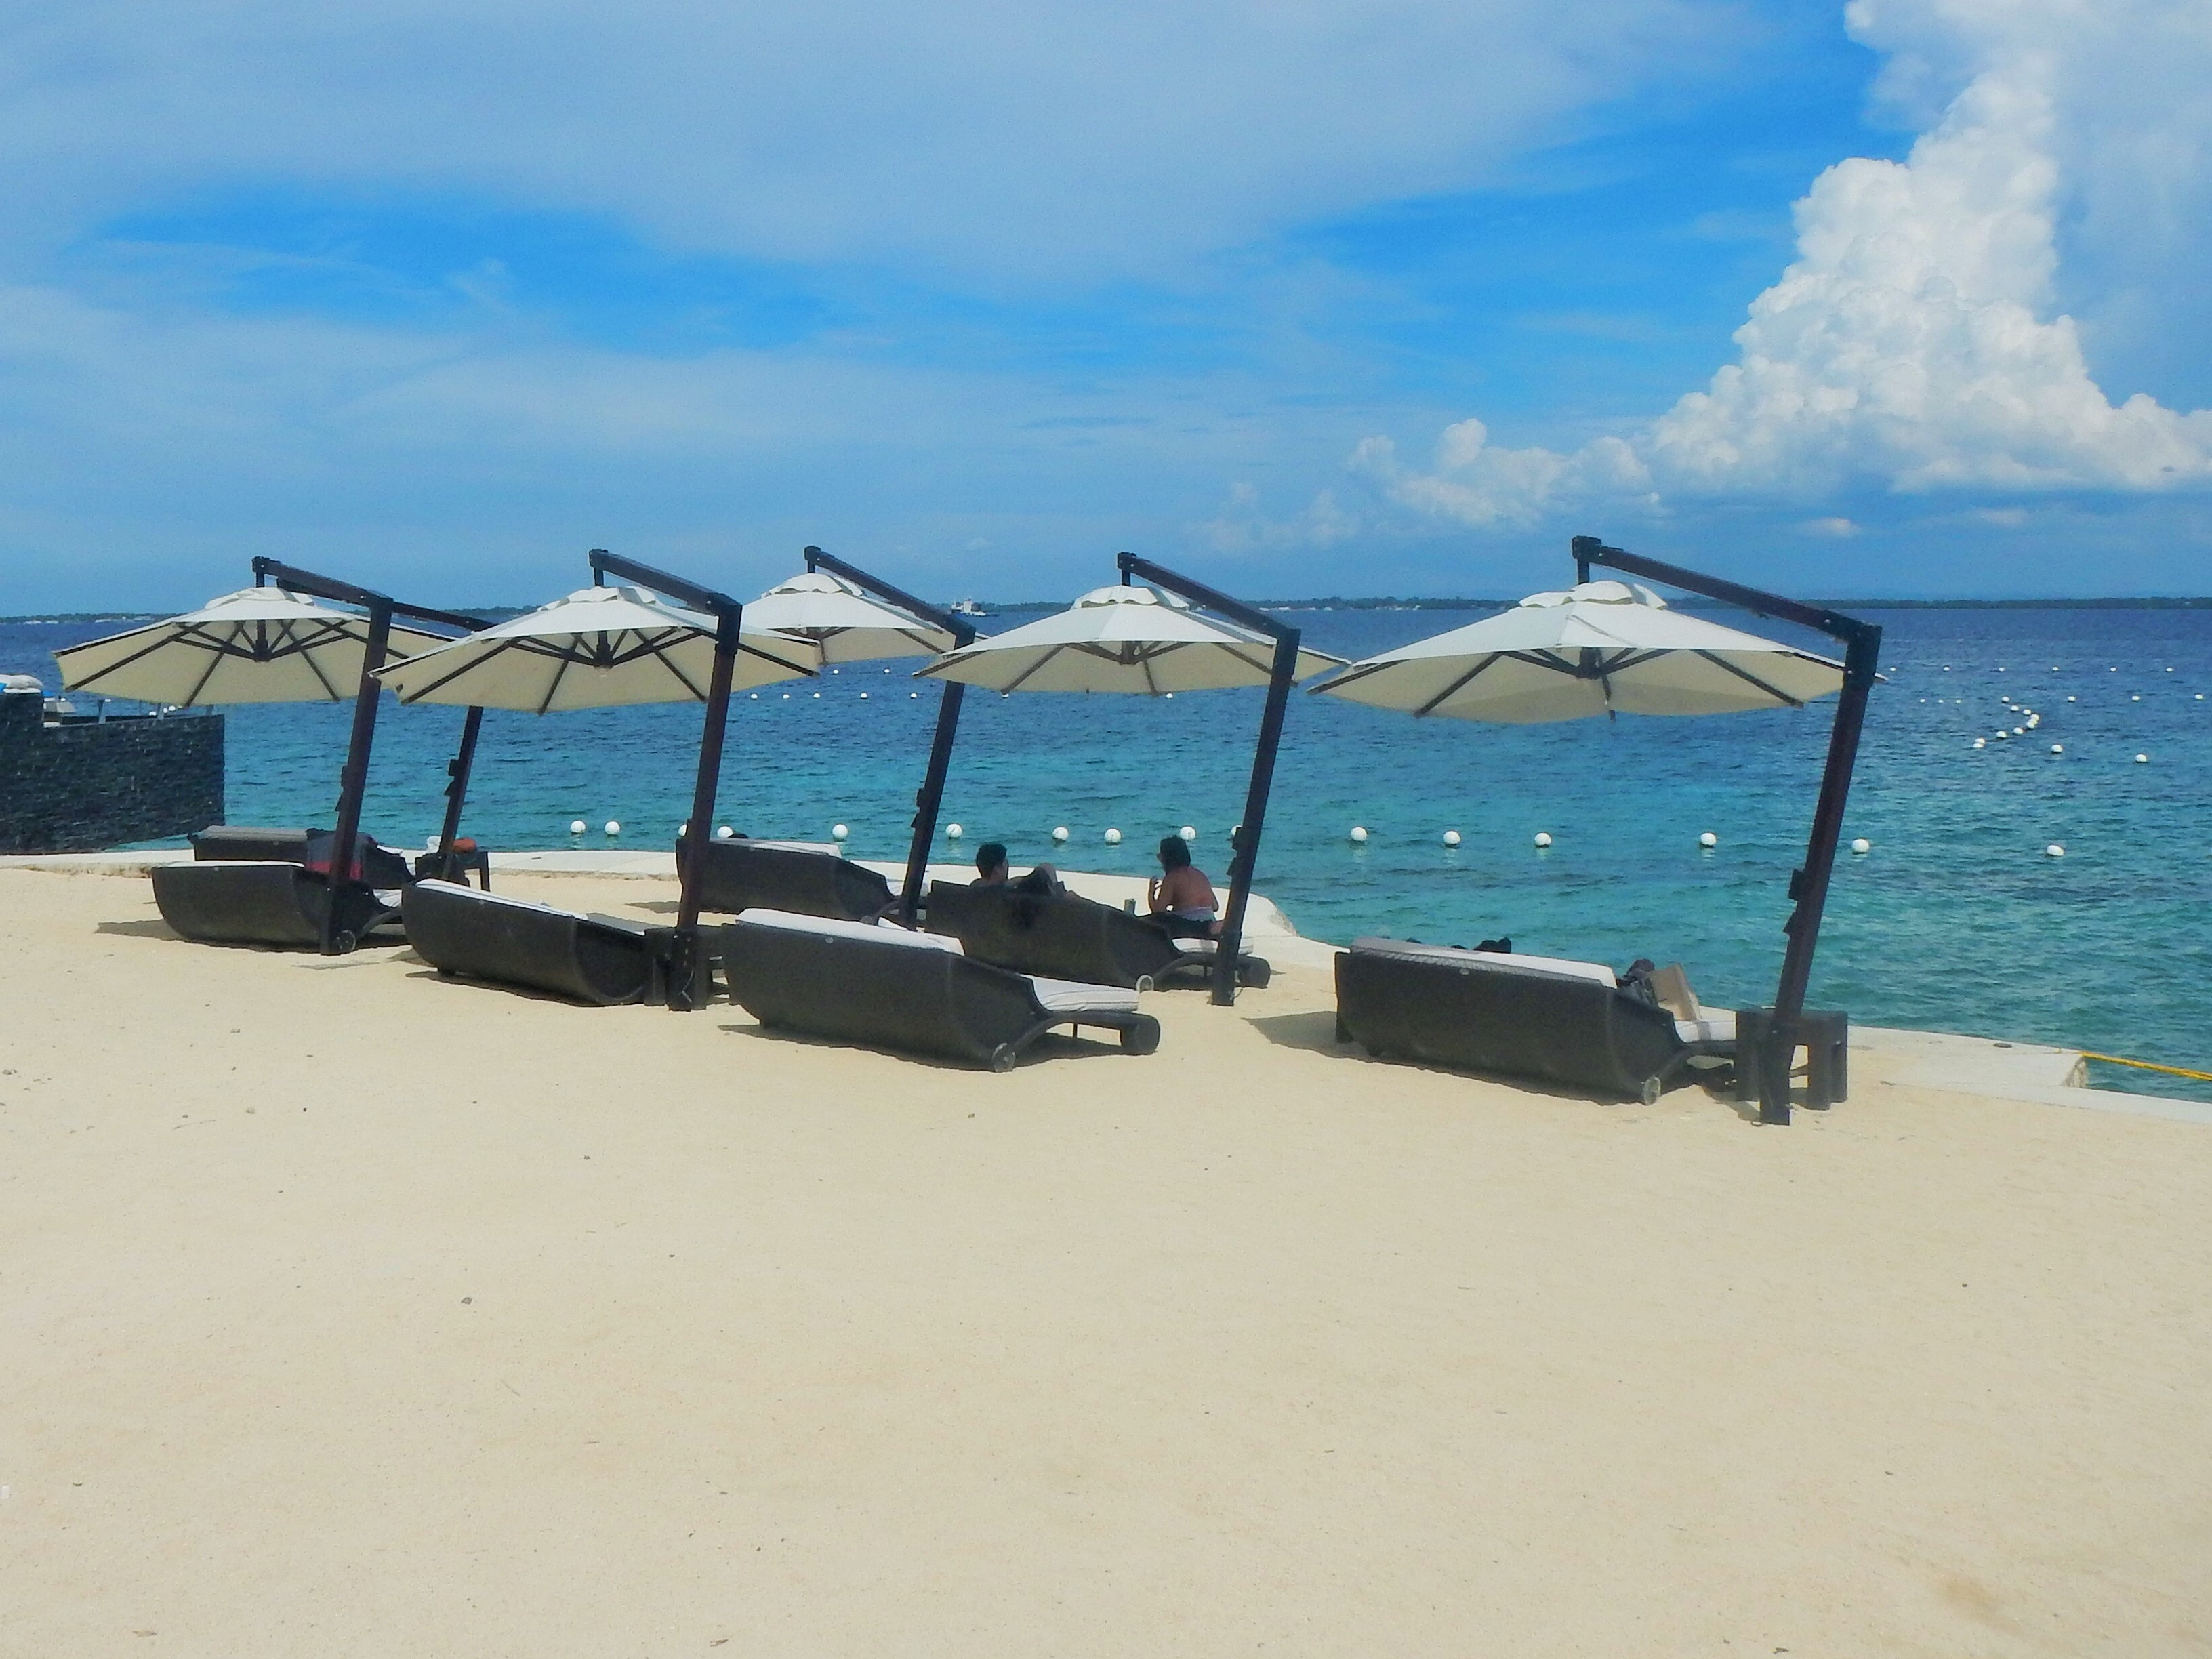 Relax and enjoy the breathtaking view on a hot, sunny day with these parasol-protected lounging chairs.